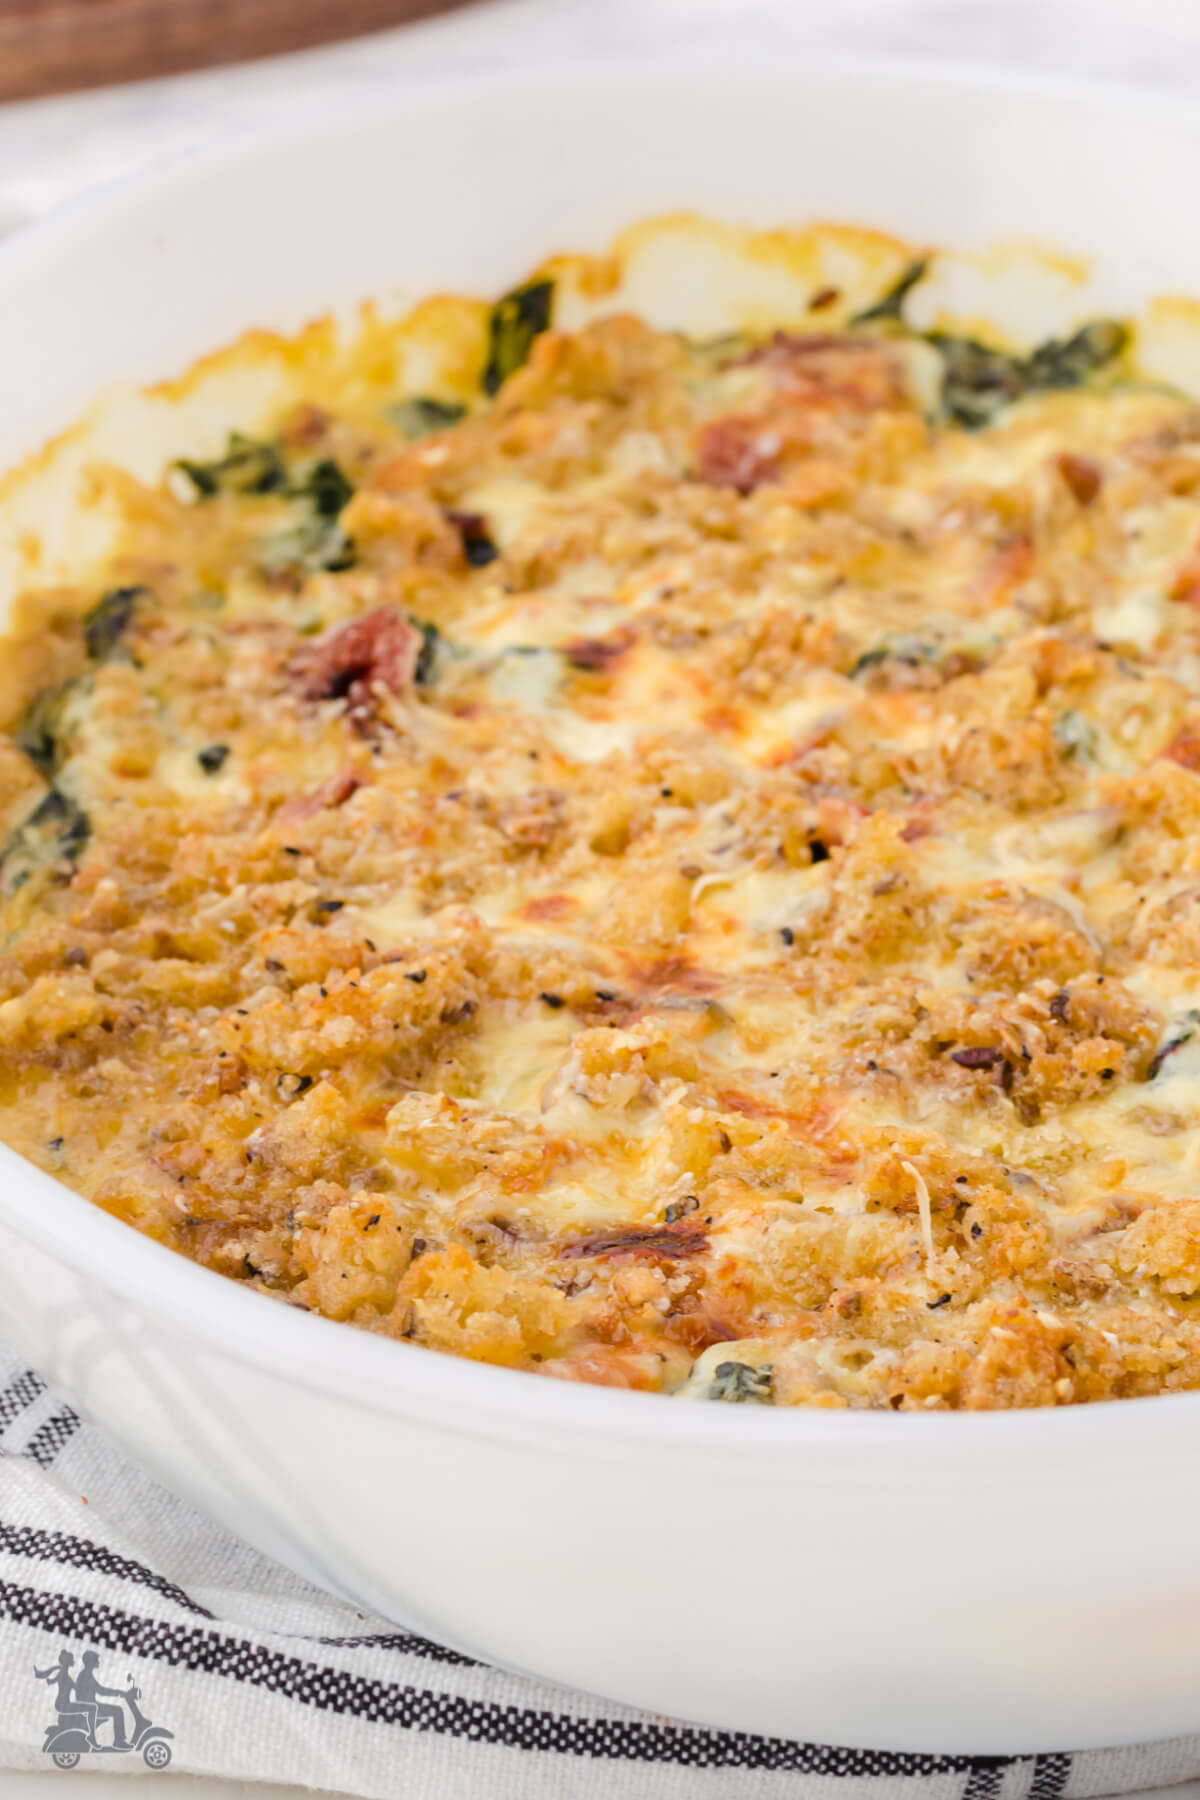 A holiday gratin dish made up of Swiss Chard topped with homemade breadcrumbs.